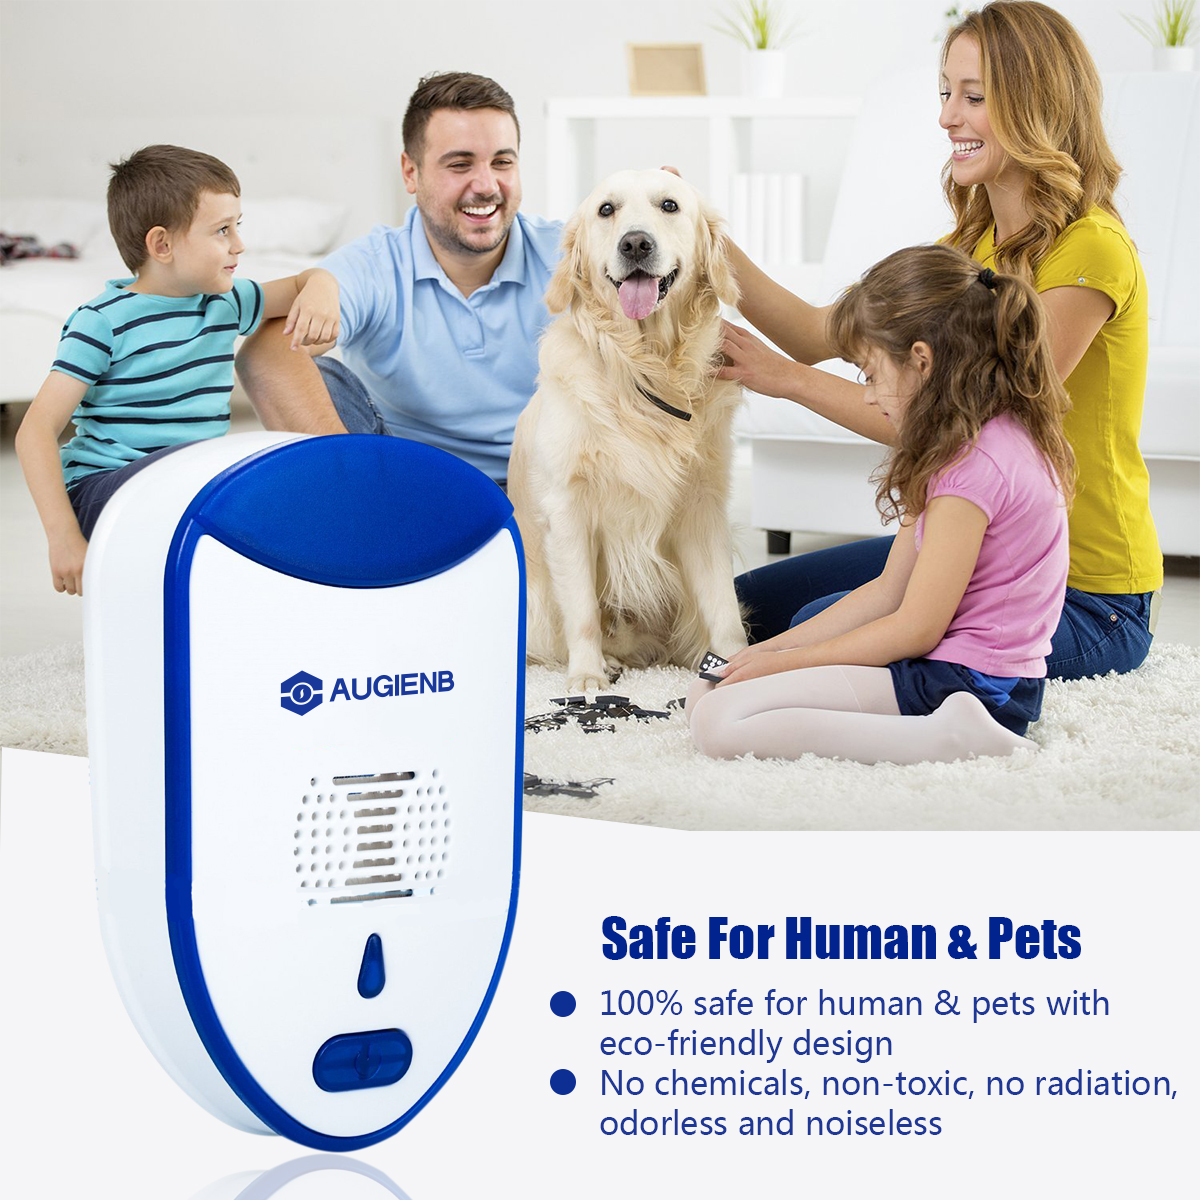 2 PACK Pest Control Ultrasonic Insect Repellent | Mosquito Repellent | Mouse Repellent | Repel Rats, Roaches, Spiders, Bed Bugs, and Ants